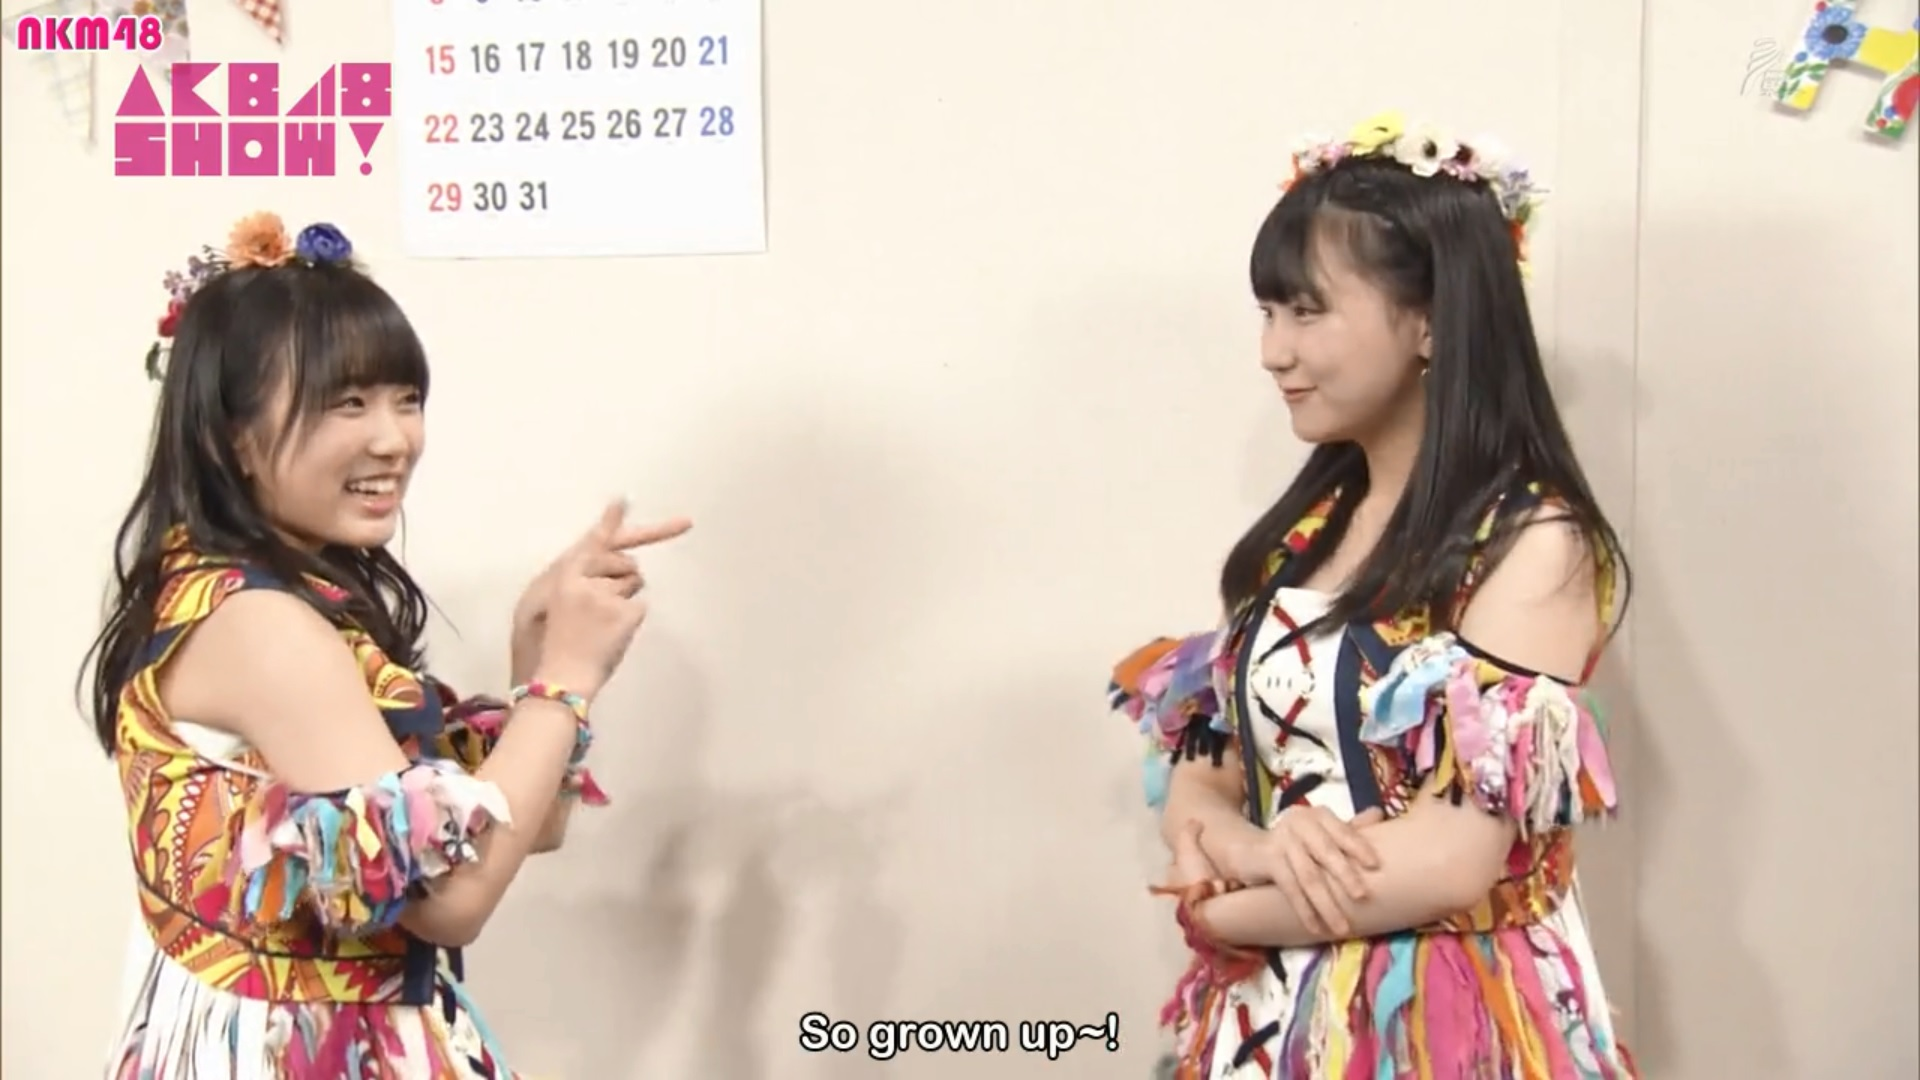 Akb48 Show Ep 1 | Pics | Download |